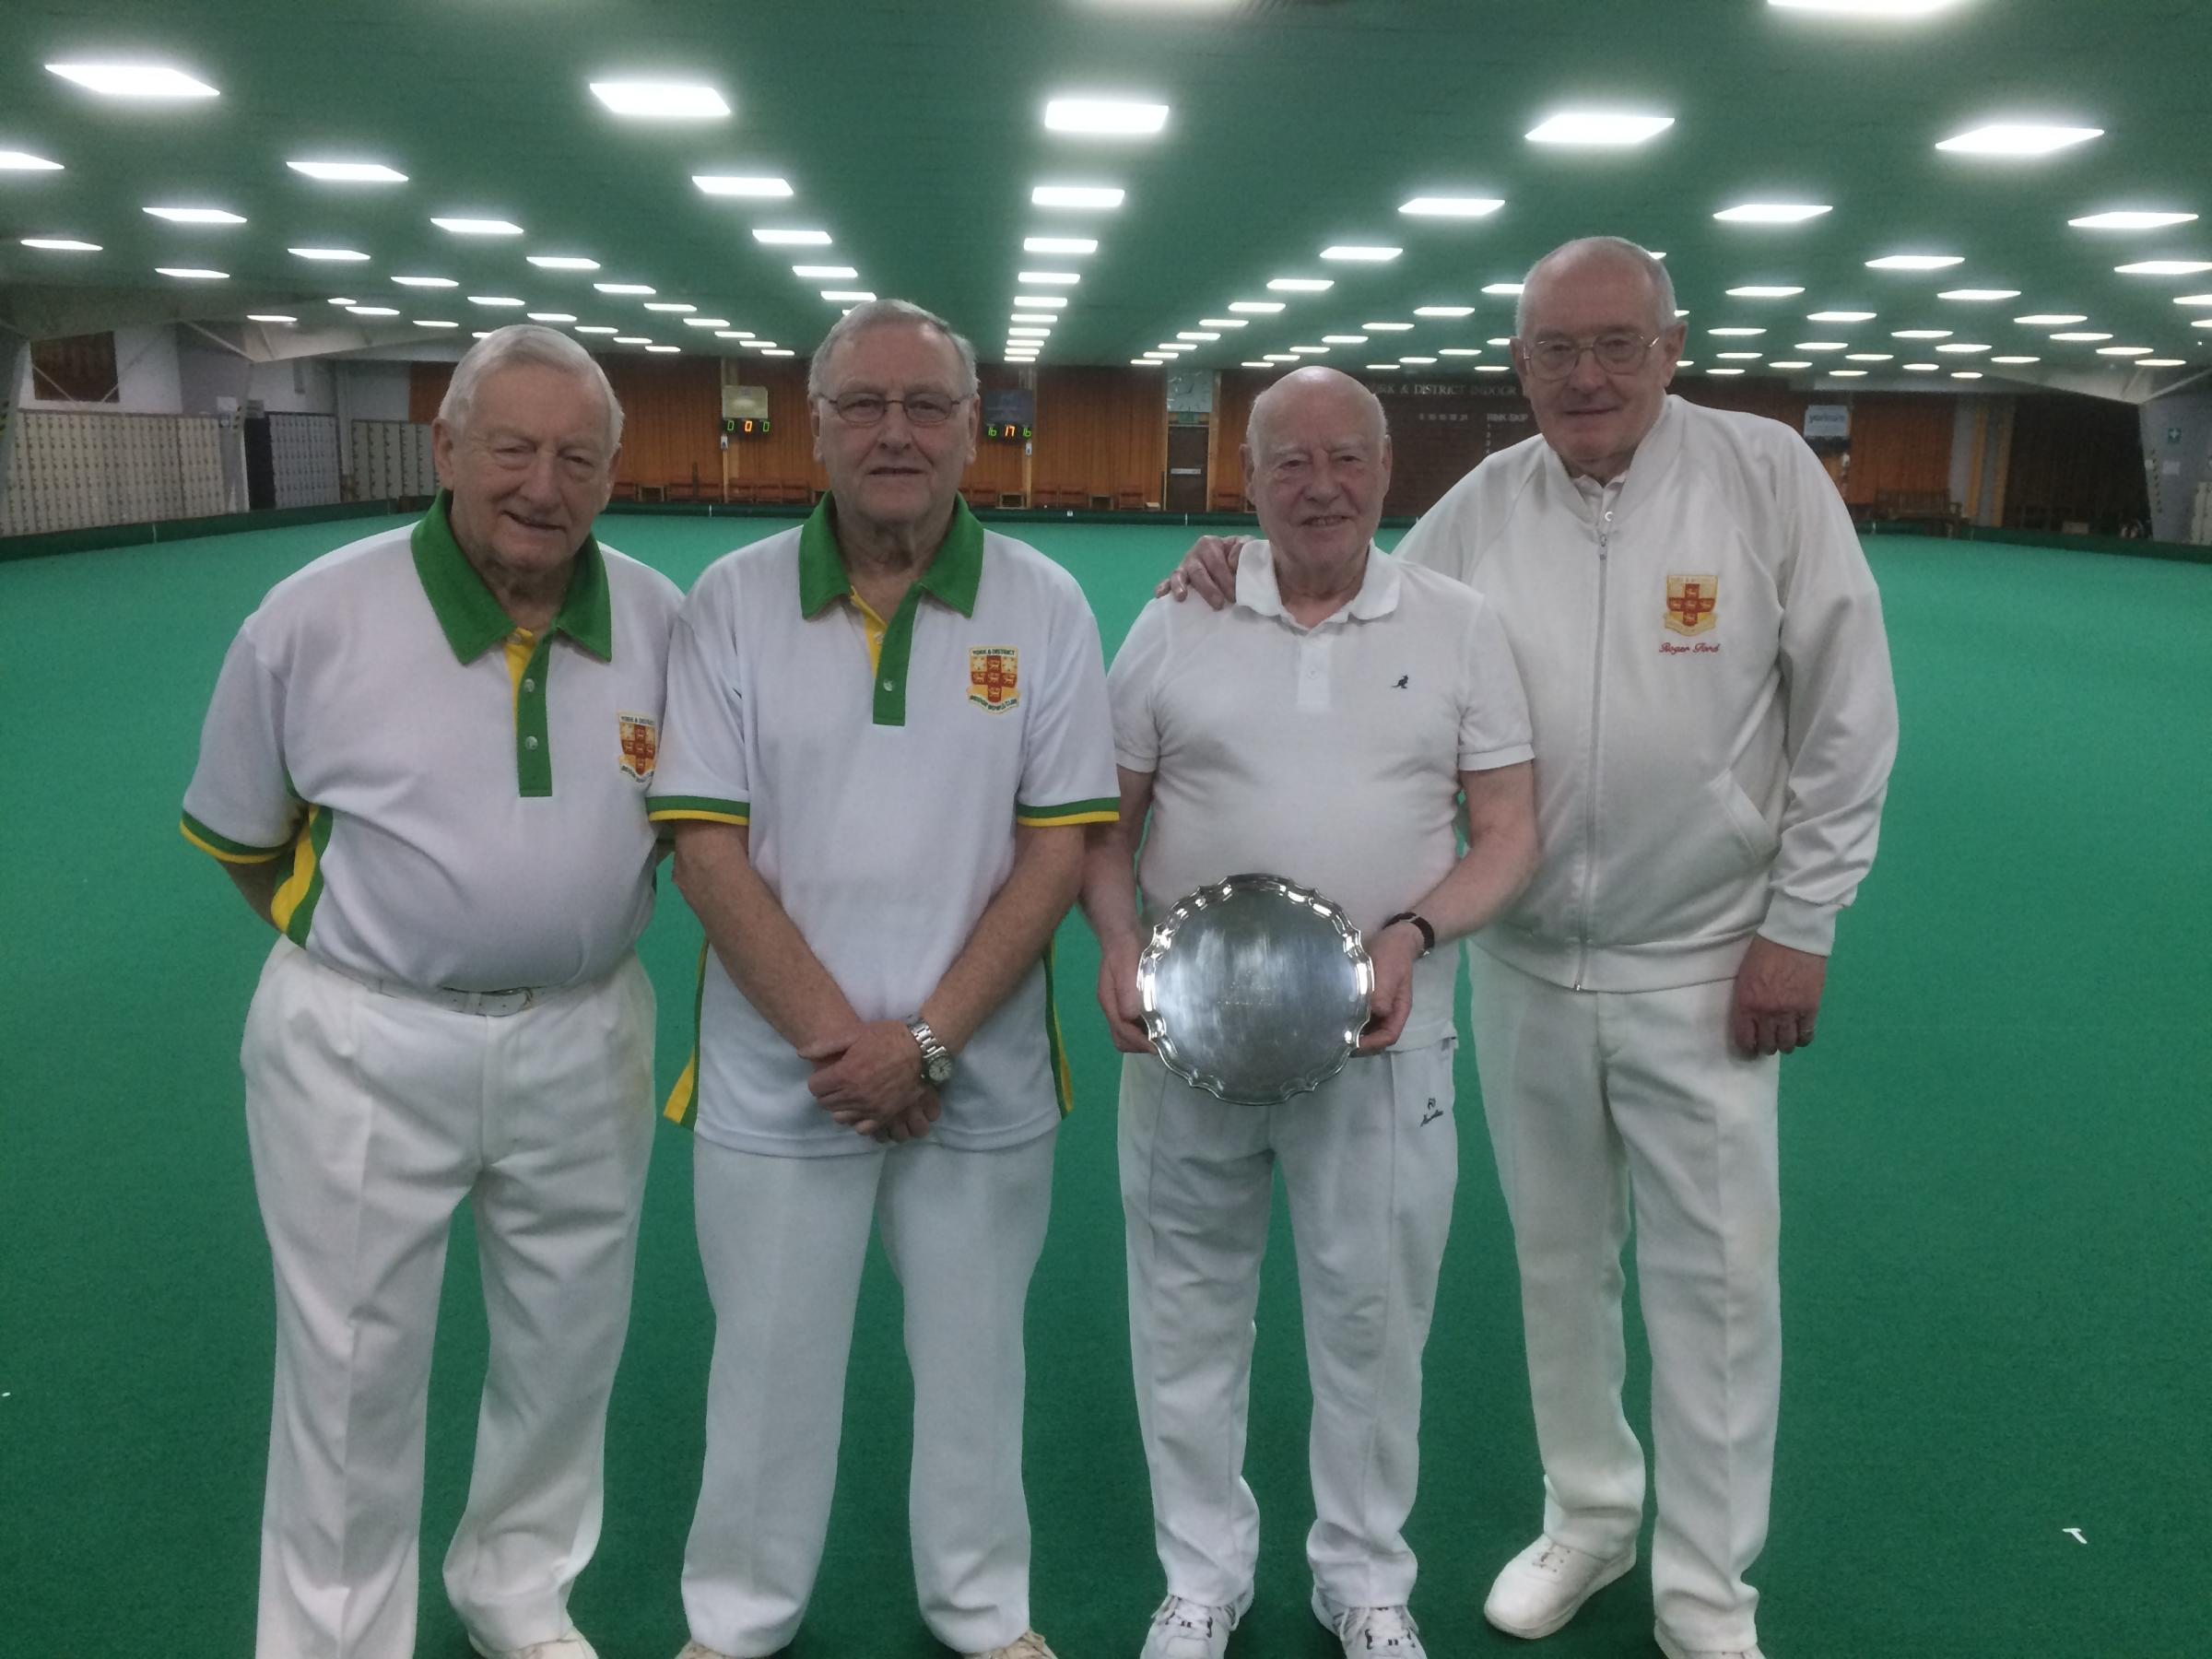 The competitors in the Tom Forbes Pairs final. From left to right: runners-up Tony Horobin and Mick Cooney, and winners Mal Bulmer and Roger Ford